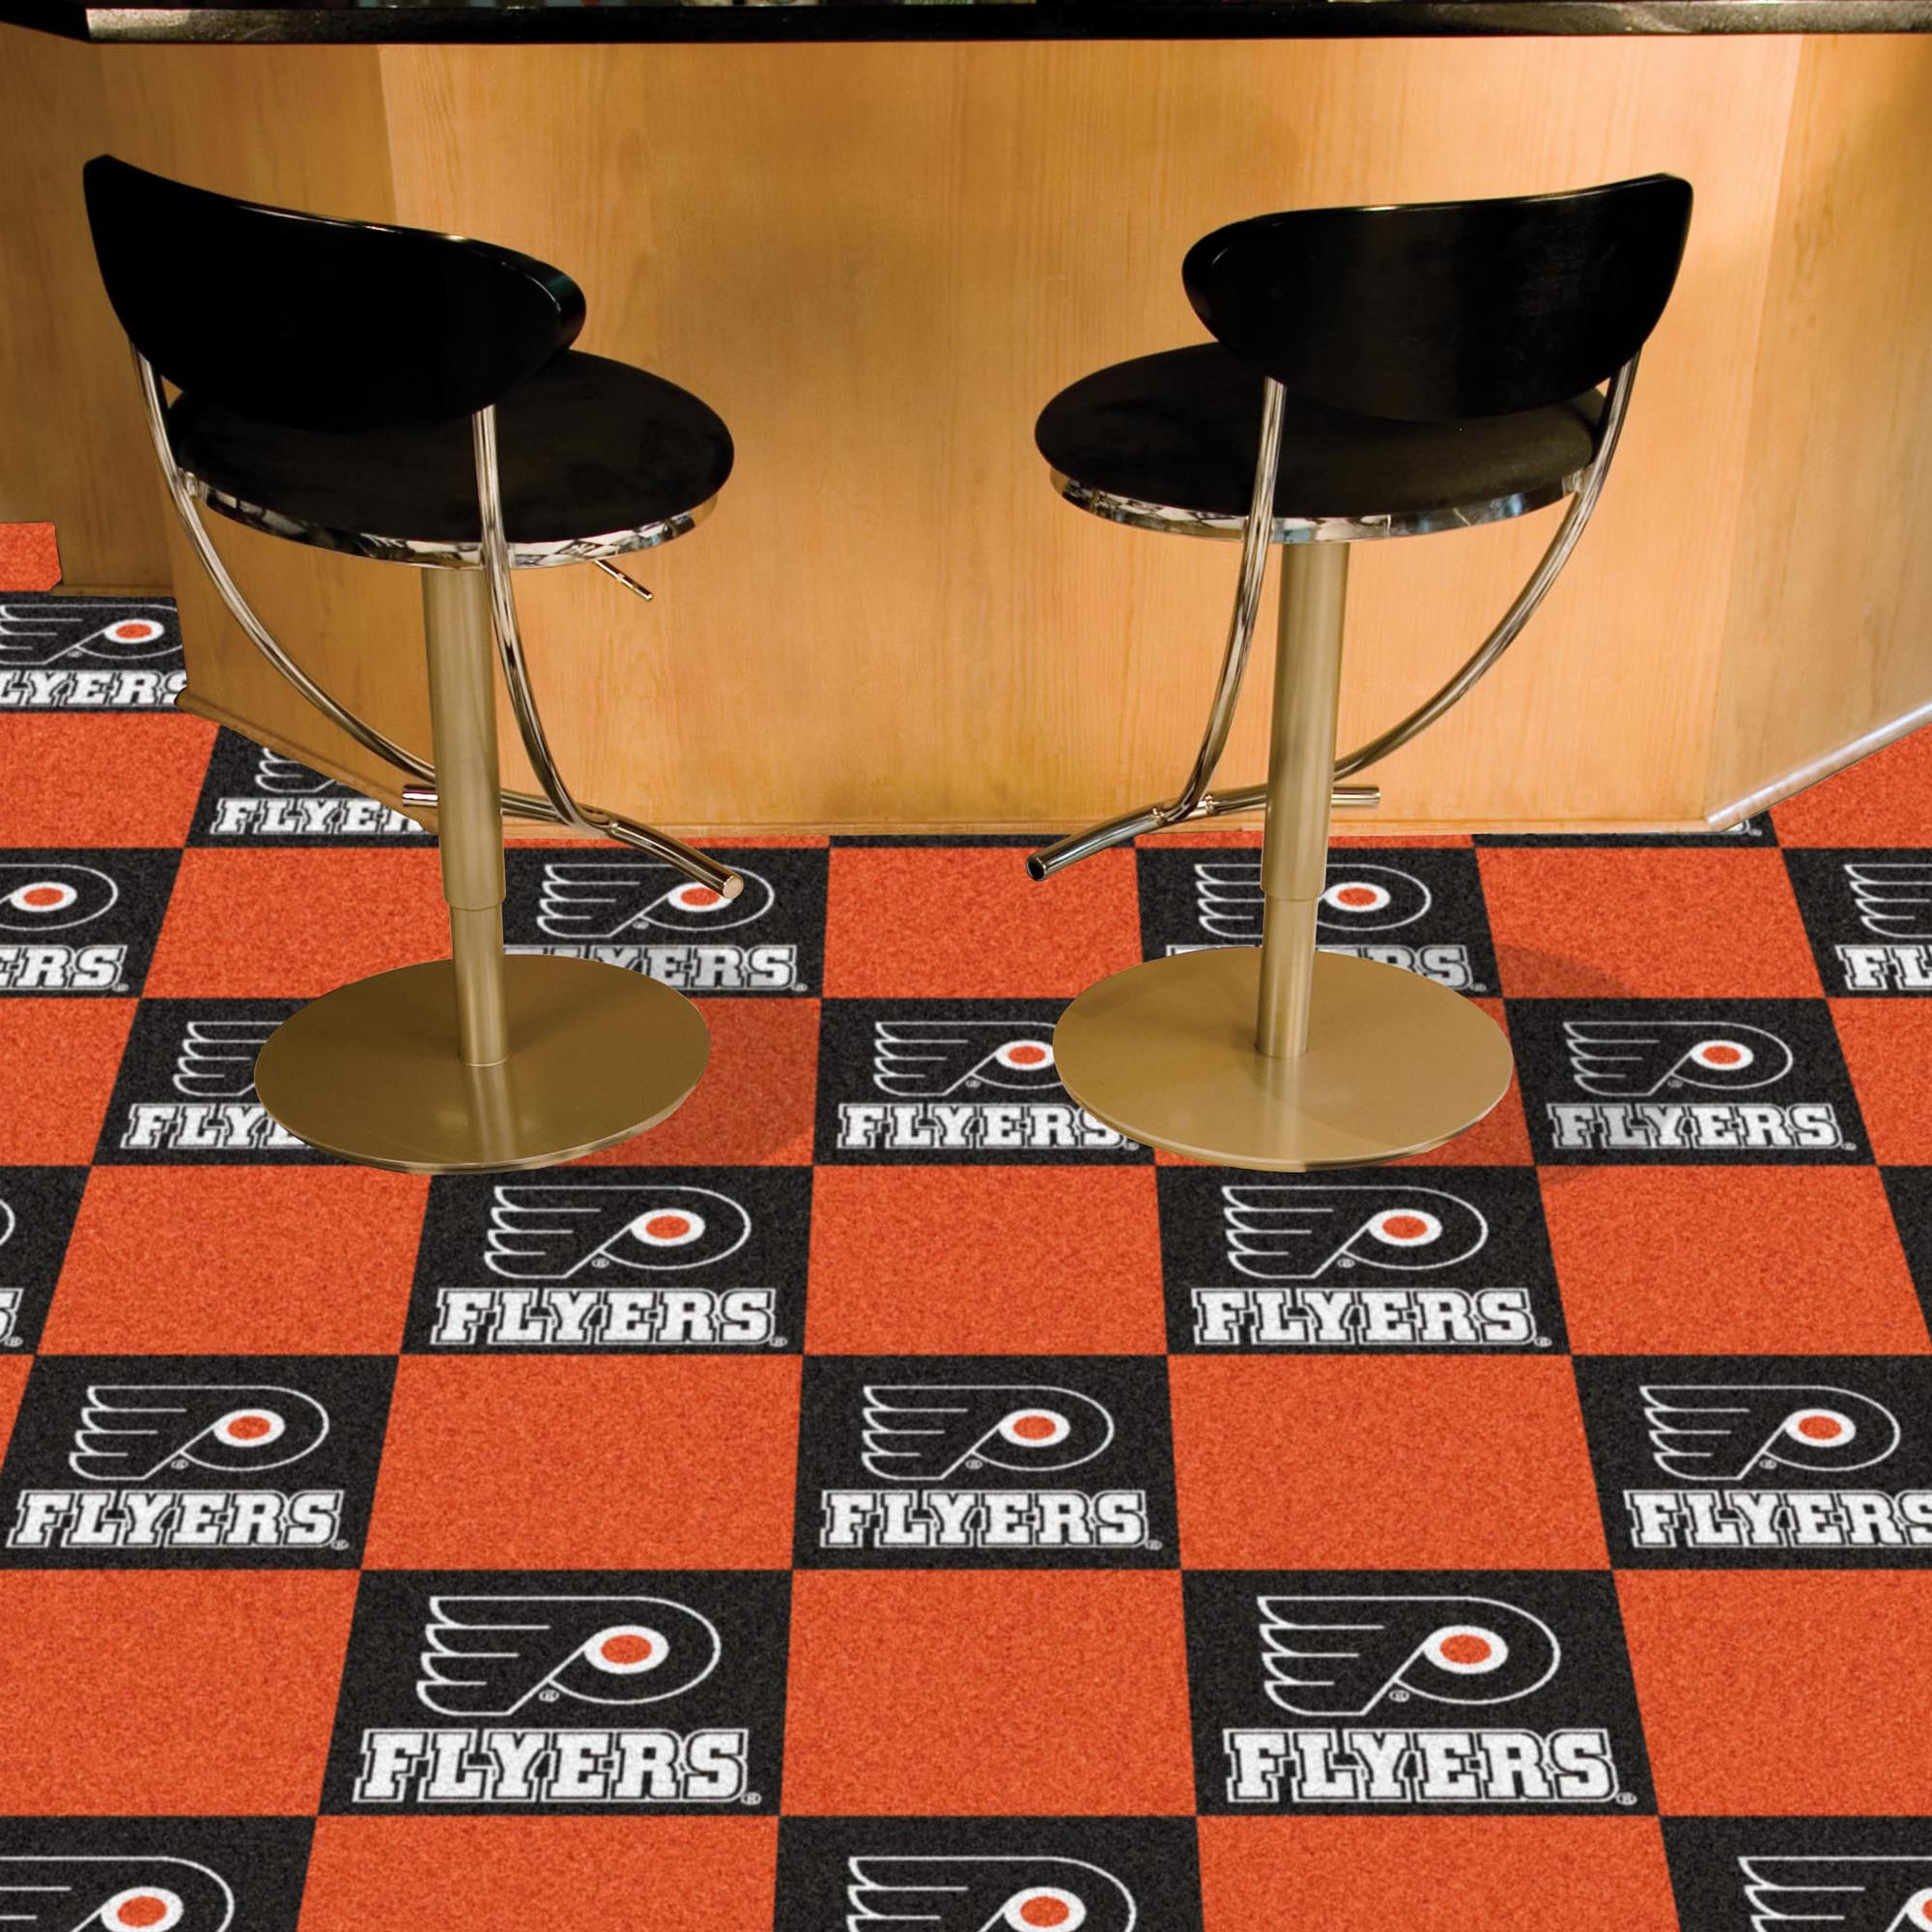 Philadelphia Flyers Carpet Tiles 18x18 in.